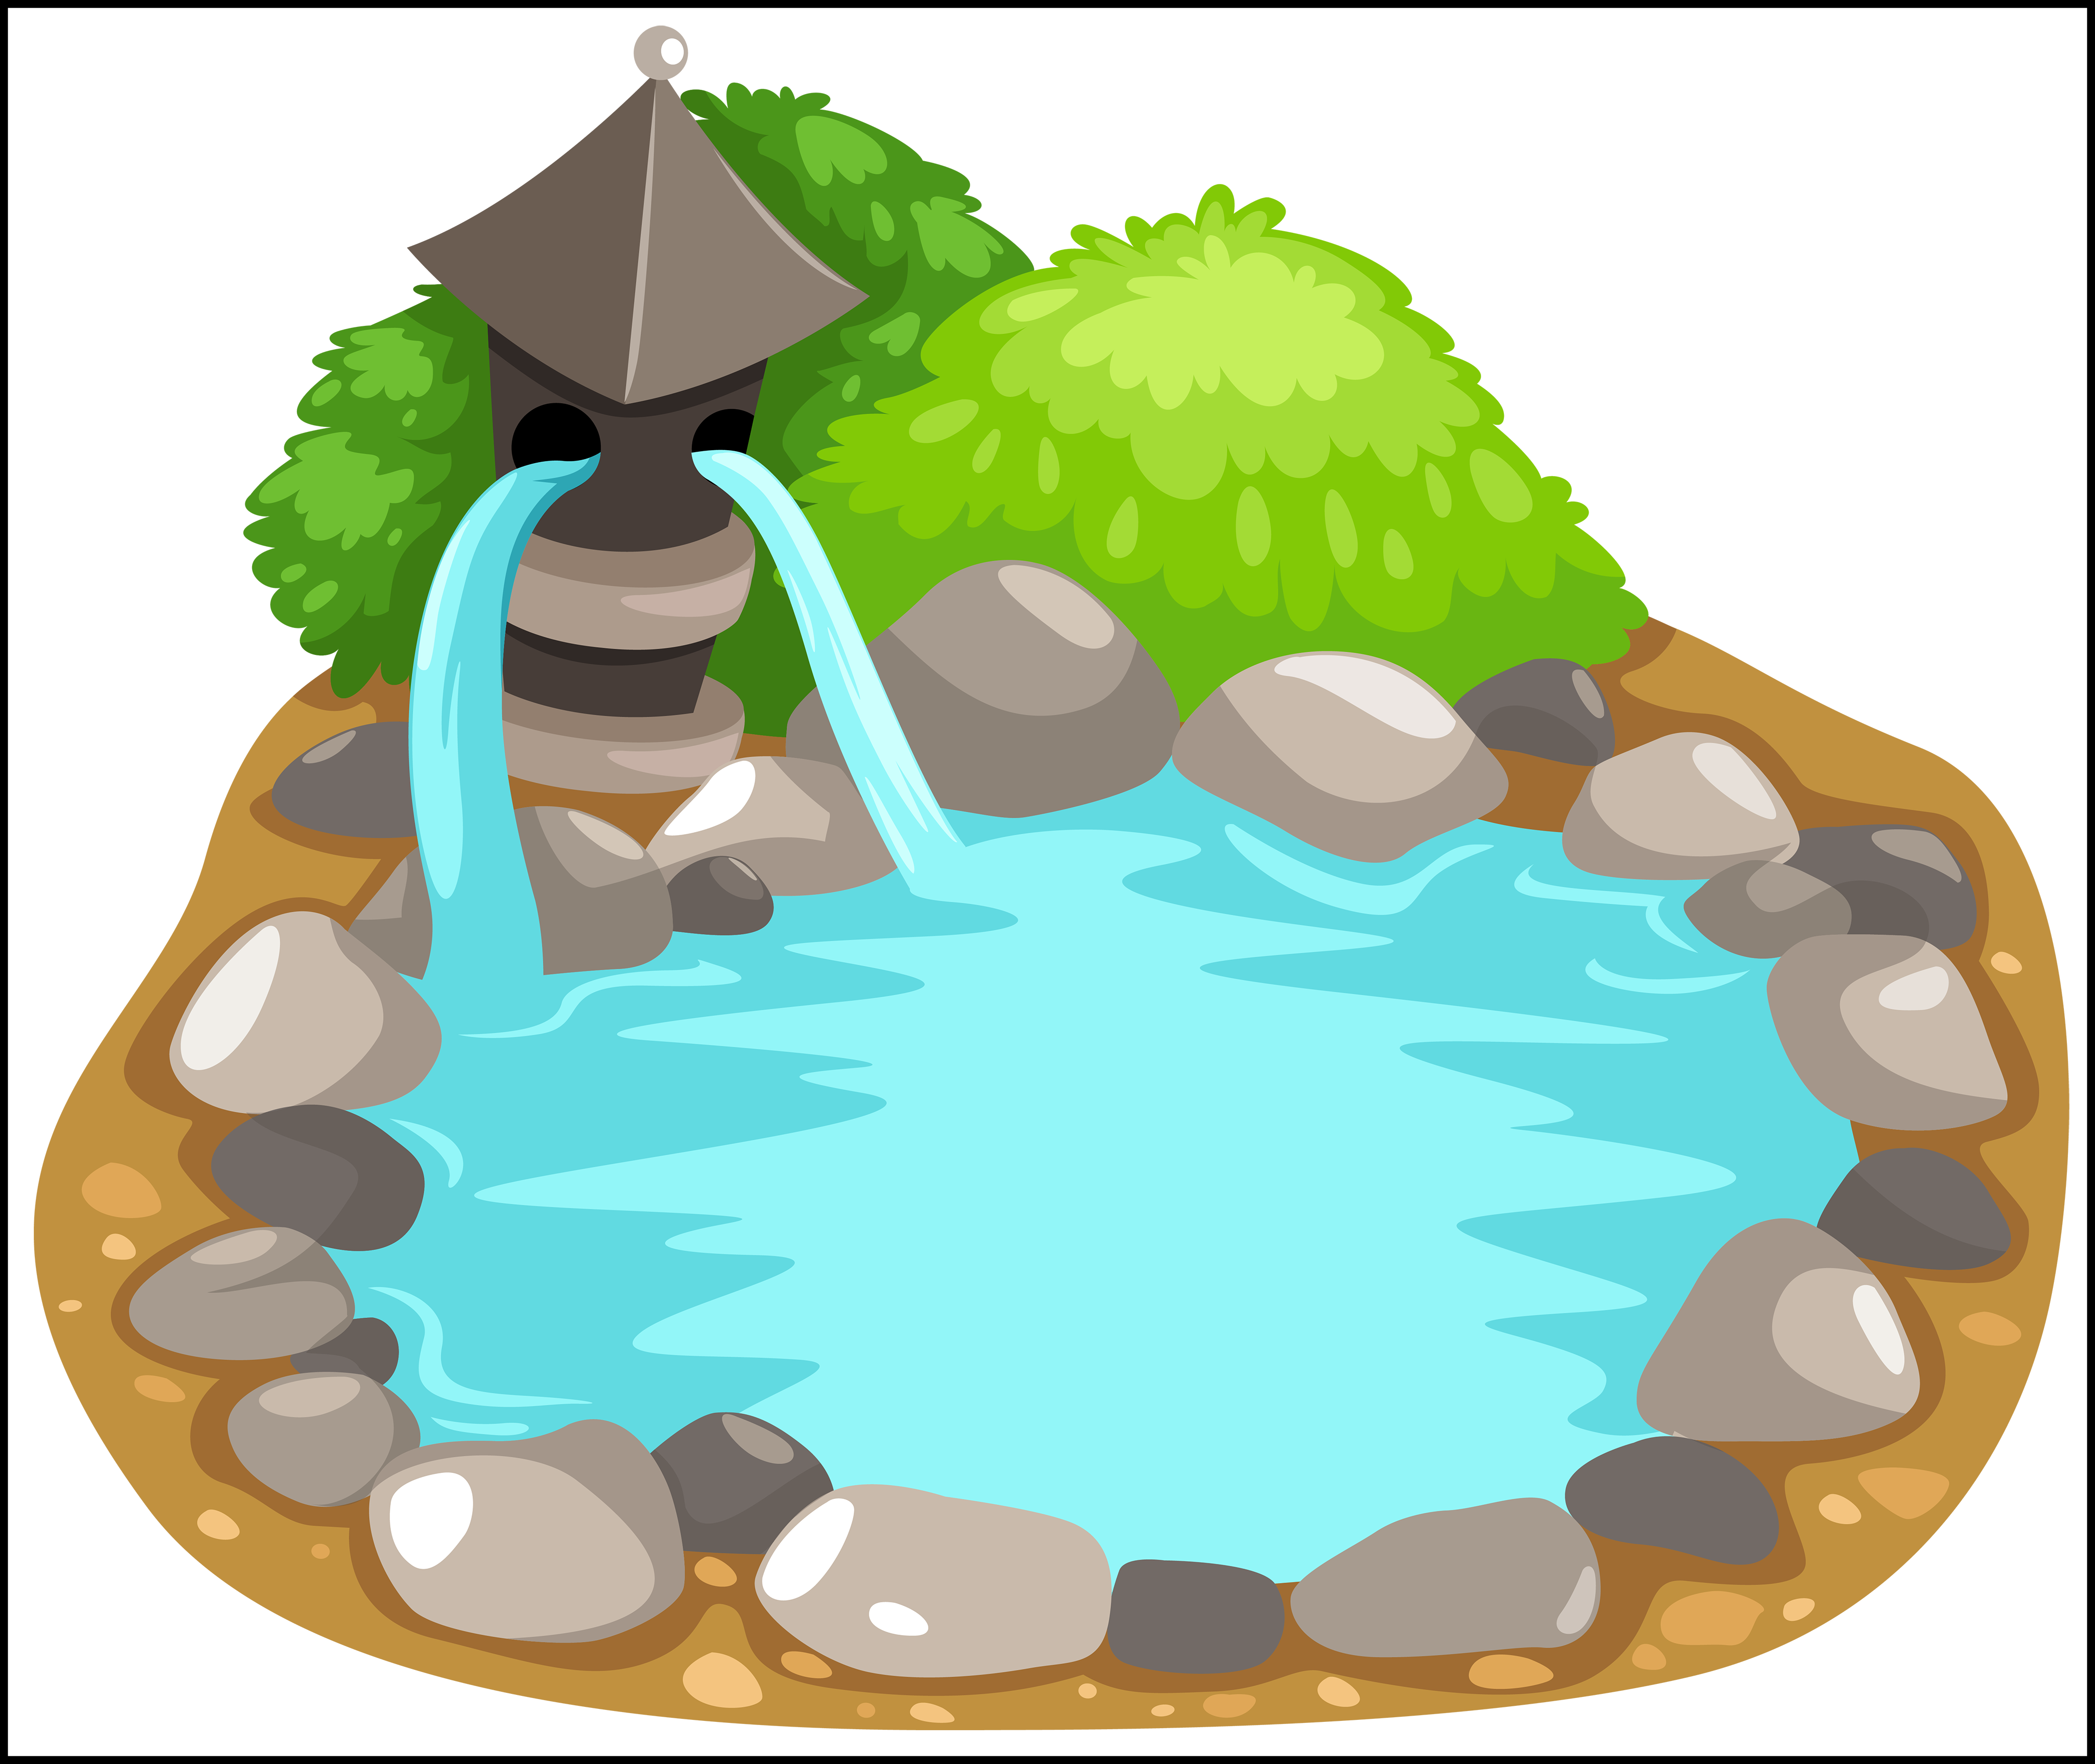 Ducks clipart pond cartoon. Appealing png and clip